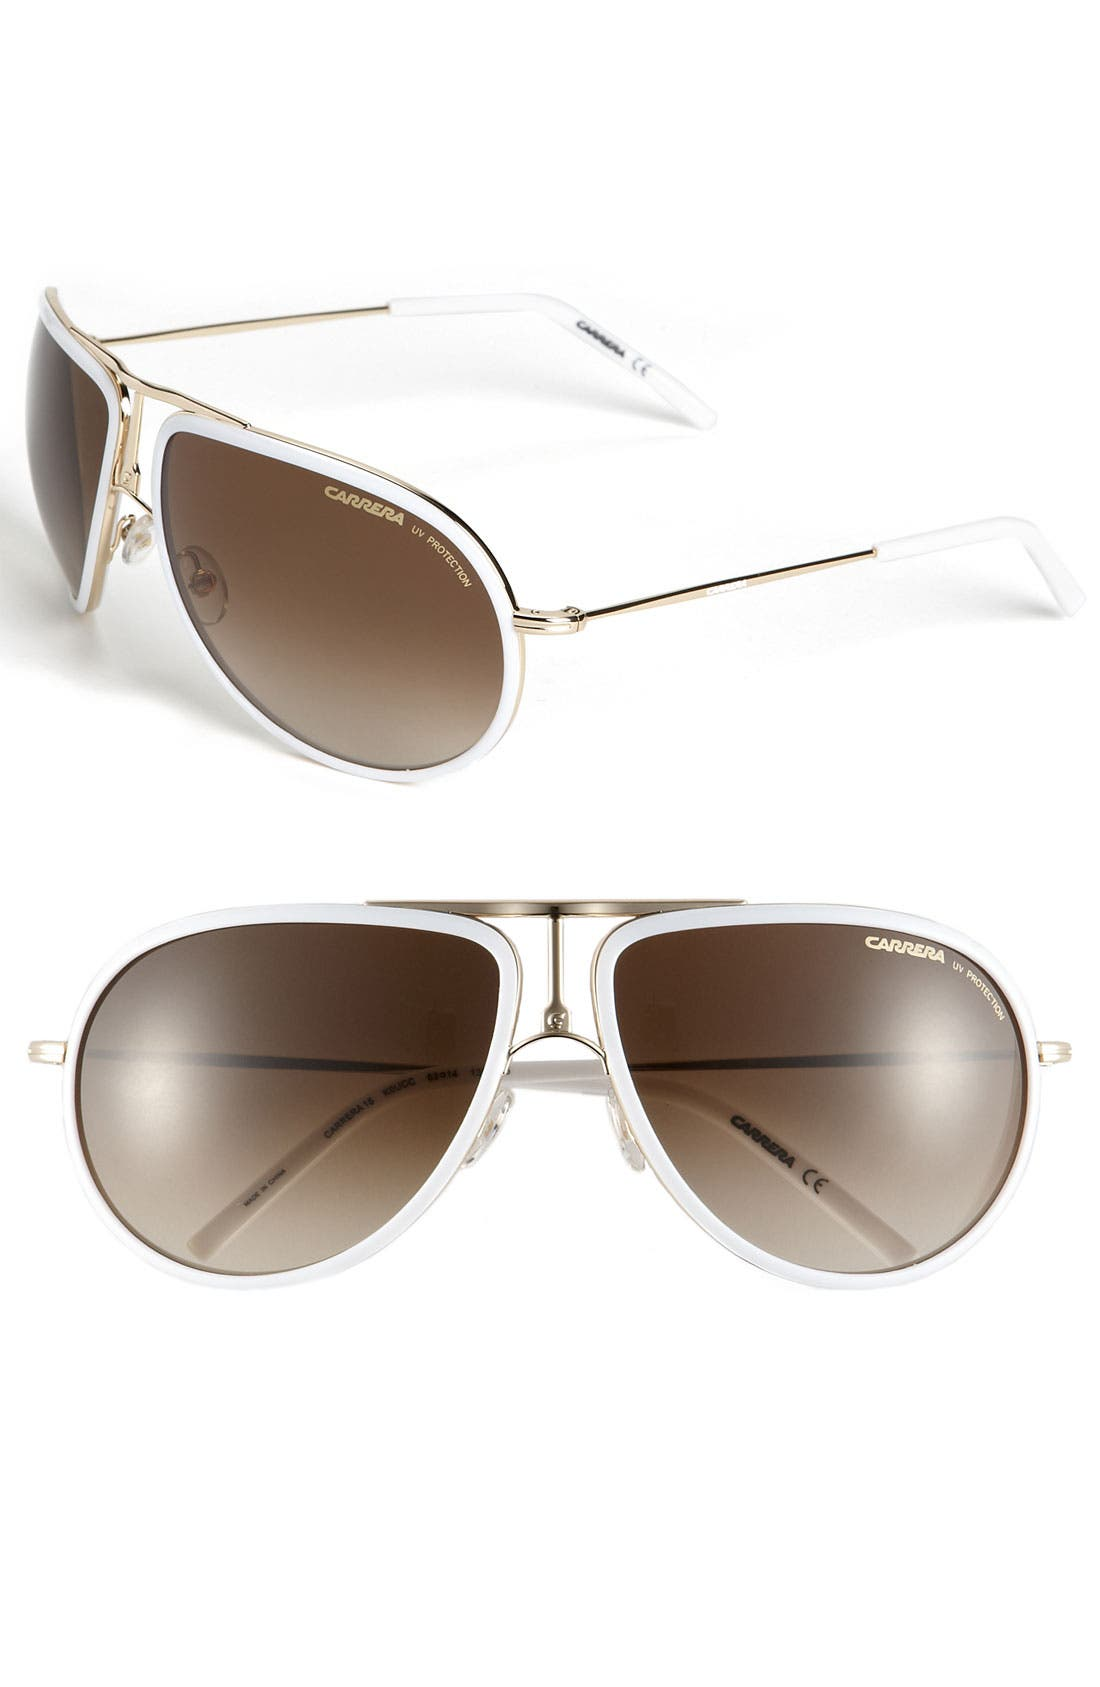 Main Image - Carrera Eyewear 63mm Metal Aviator Sunglasses